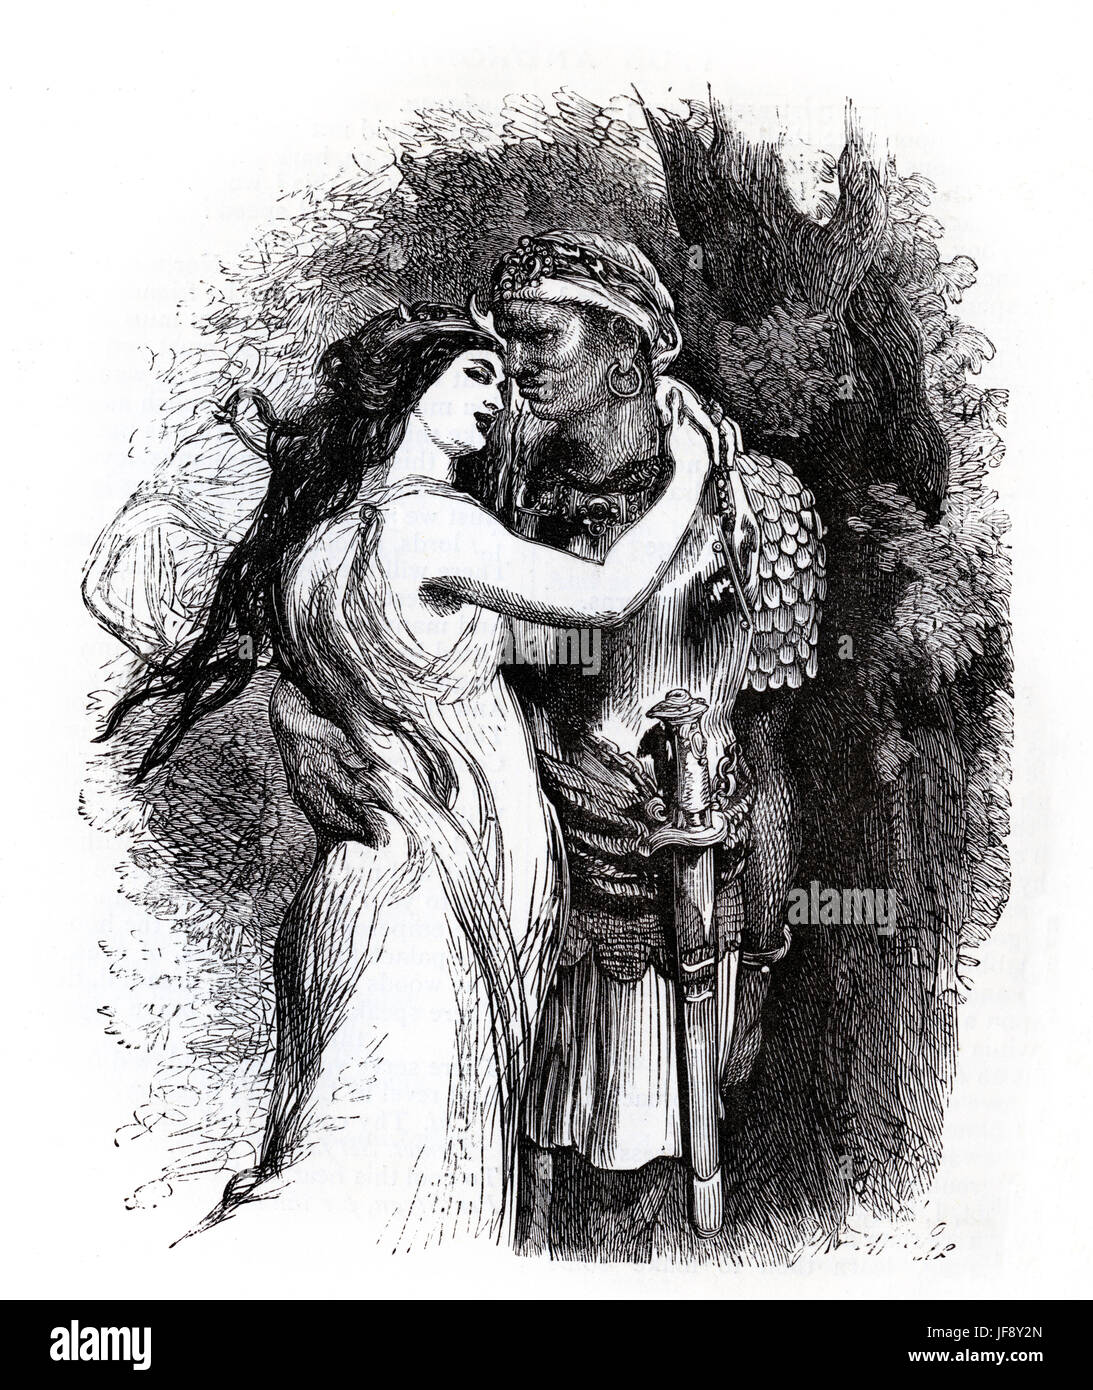 Titus Andronicus, play by William Shakespeare (26 April 1564 – 23 April 1616). Act 2 scene 2, Aaron and Tamora in - Stock Image